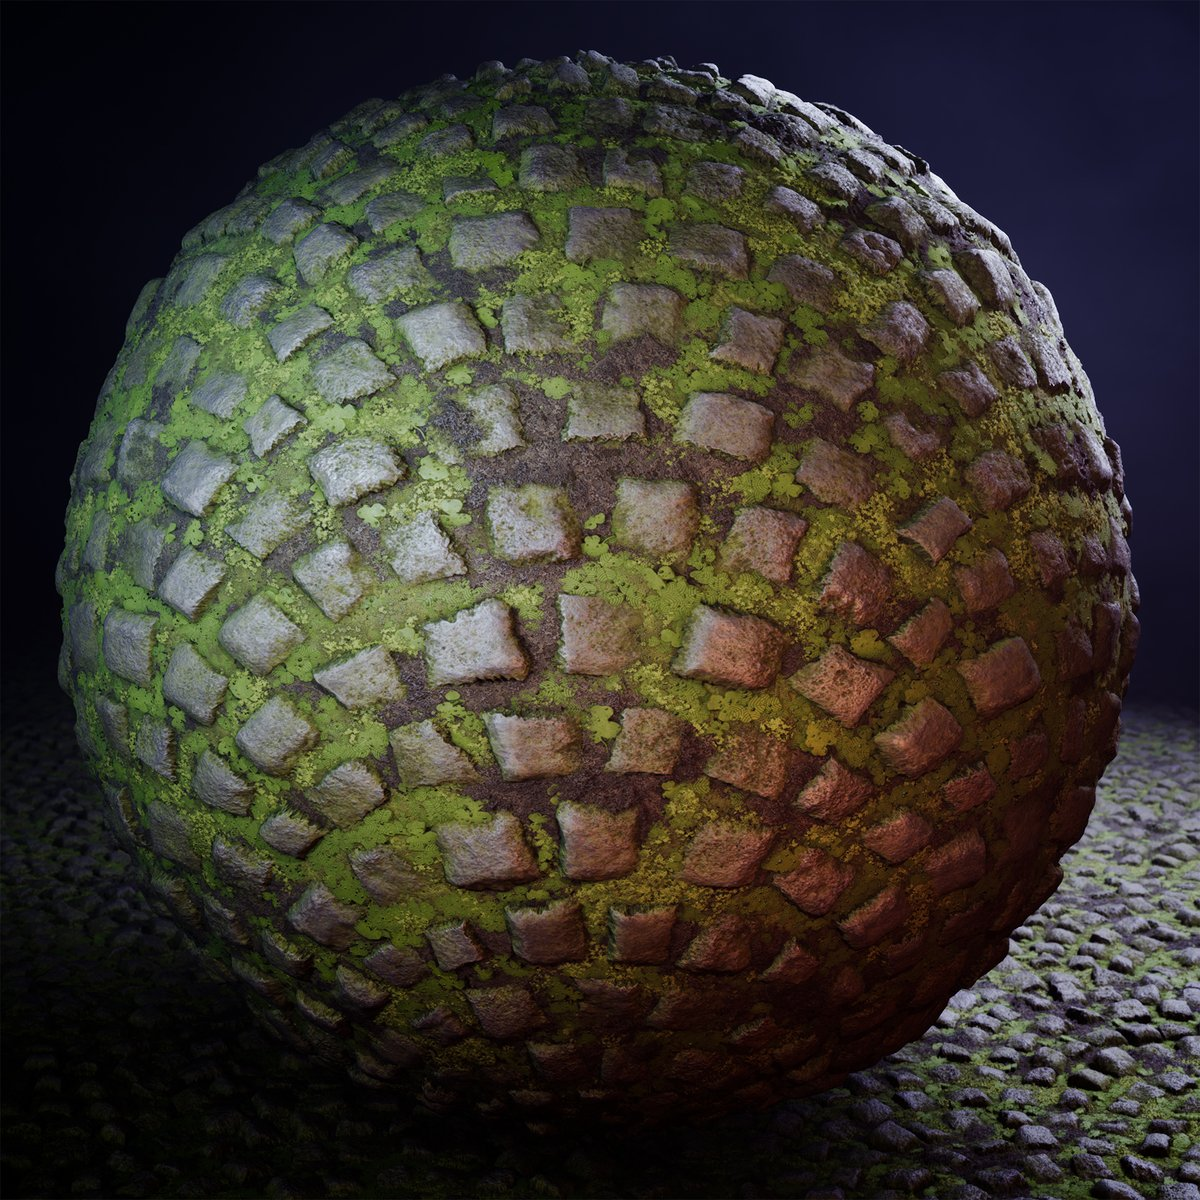 Hello all! I just finished this mossy cobblestones material. Check it out on @ArtStationHQ: http://www.artstation.com/artwork/B1koB9 Made in #SubstanceDesigner and rendered in #UnrealEngine4.  #gamedev #gameart #textures #materials #ProceduralArtpic.twitter.com/p1hRLAUqSb